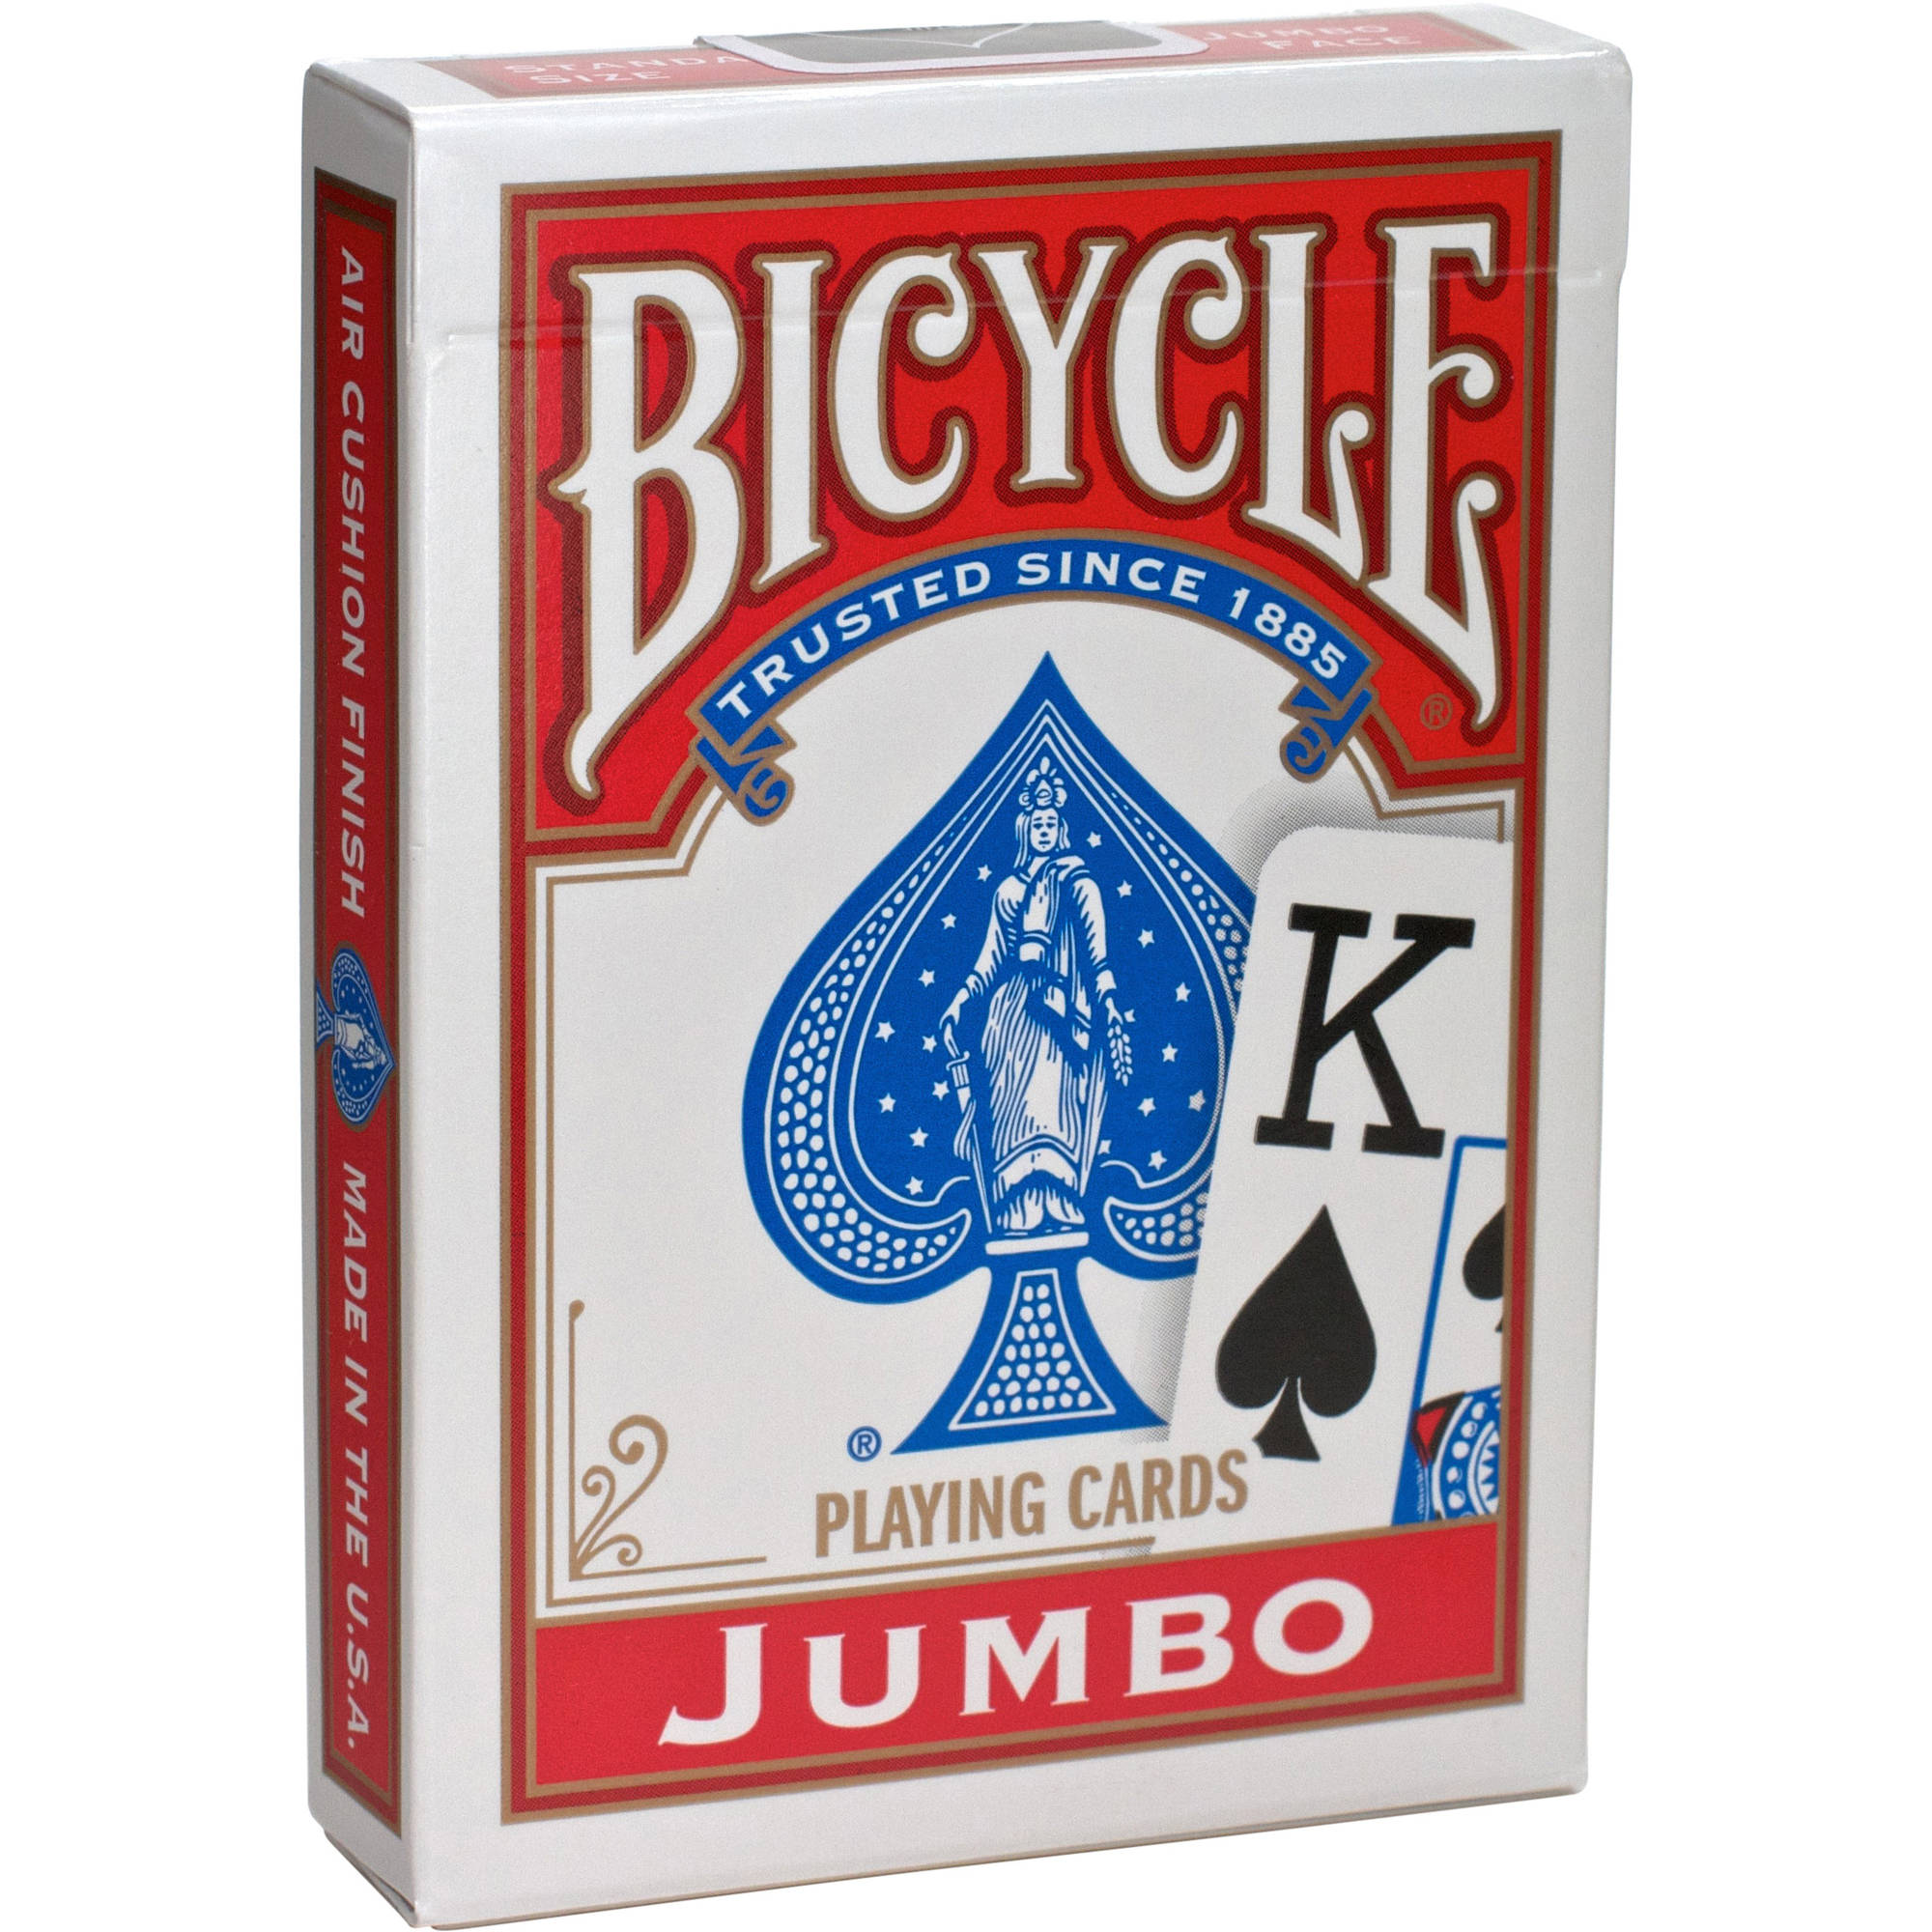 Bicycle Jumbo Indexed Traditional Playing Cards, Poker Size